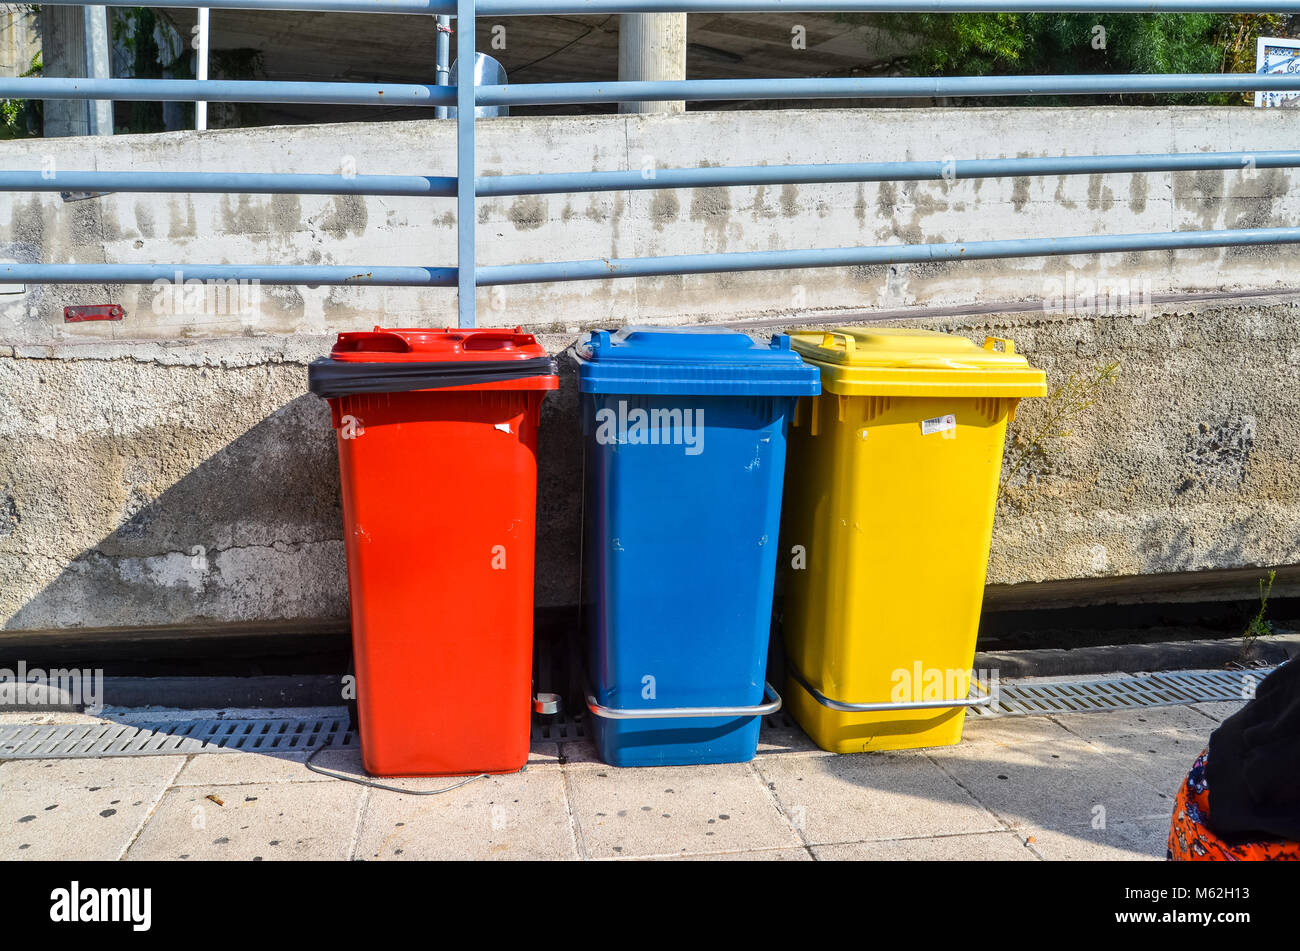 colourful signs for recycling bins